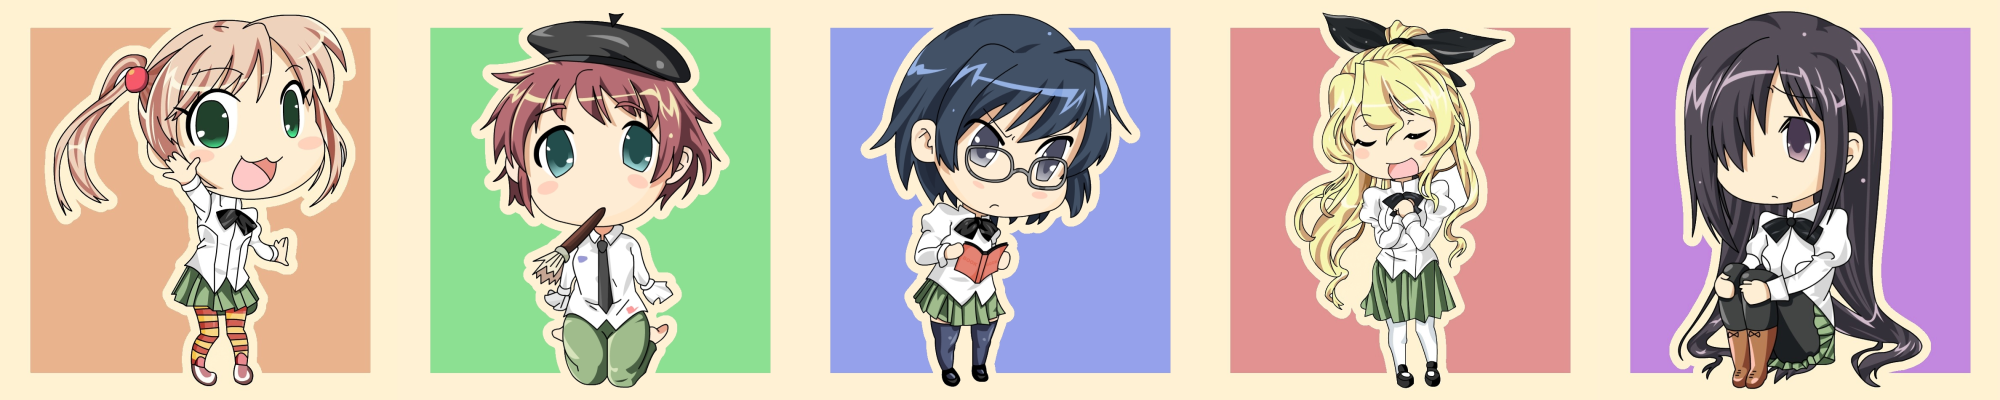 [Katawa Shoujo] Vector Chibi, Pastel Vr/ReRelease by PikKirby